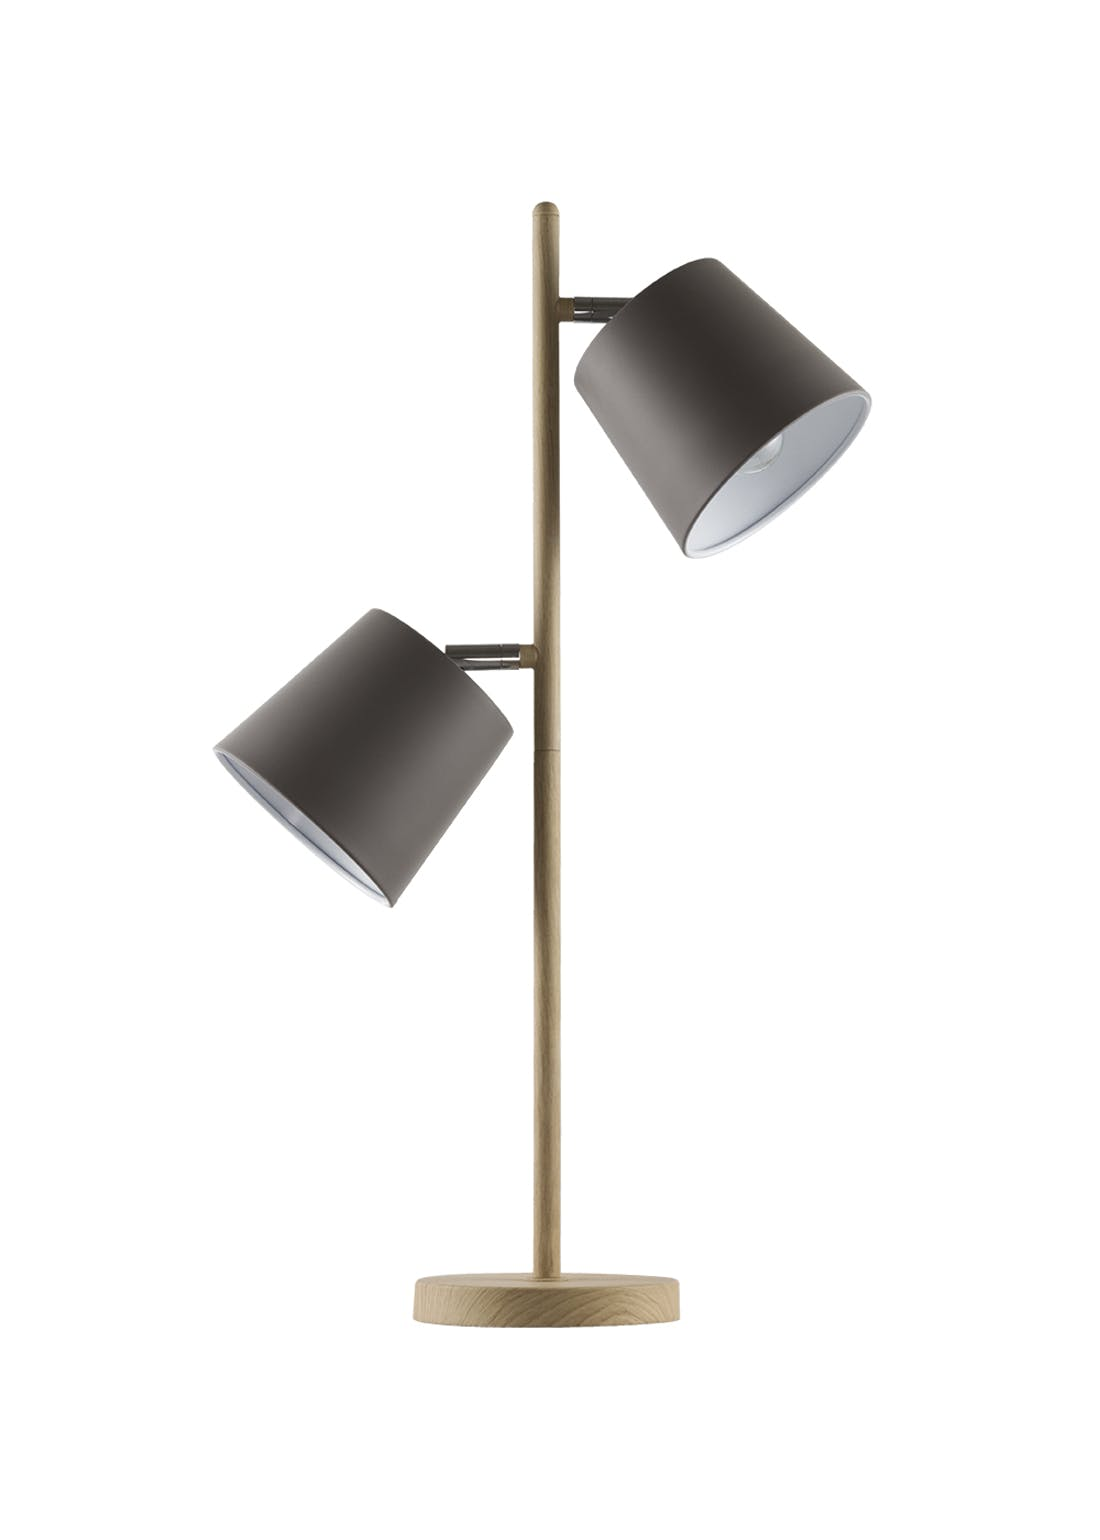 Double Shade Table Lamp (H31cm x W27cm)